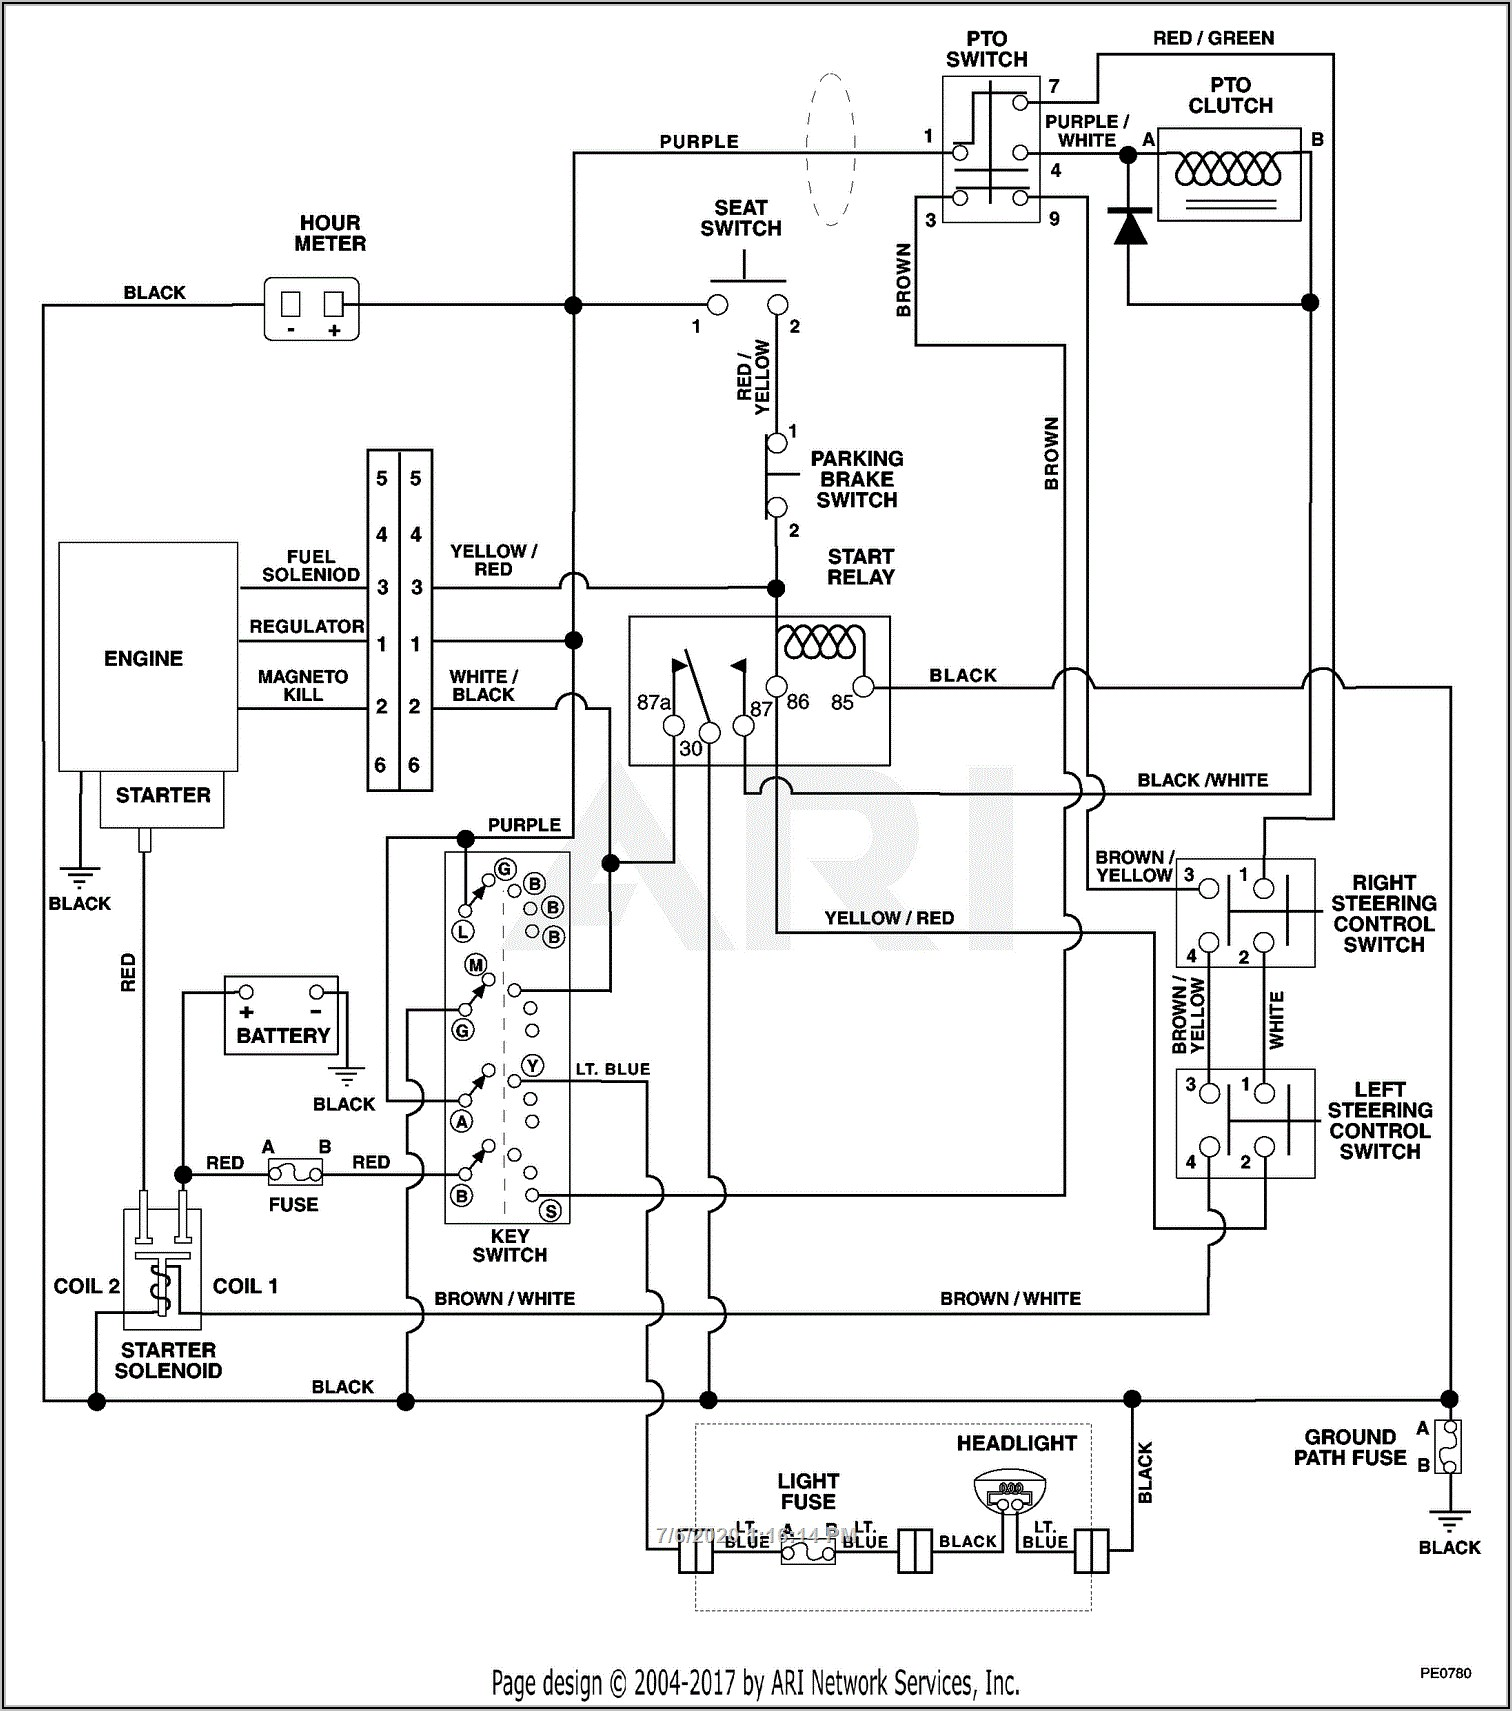 2010 Ford F150 Fuse Panel Diagram